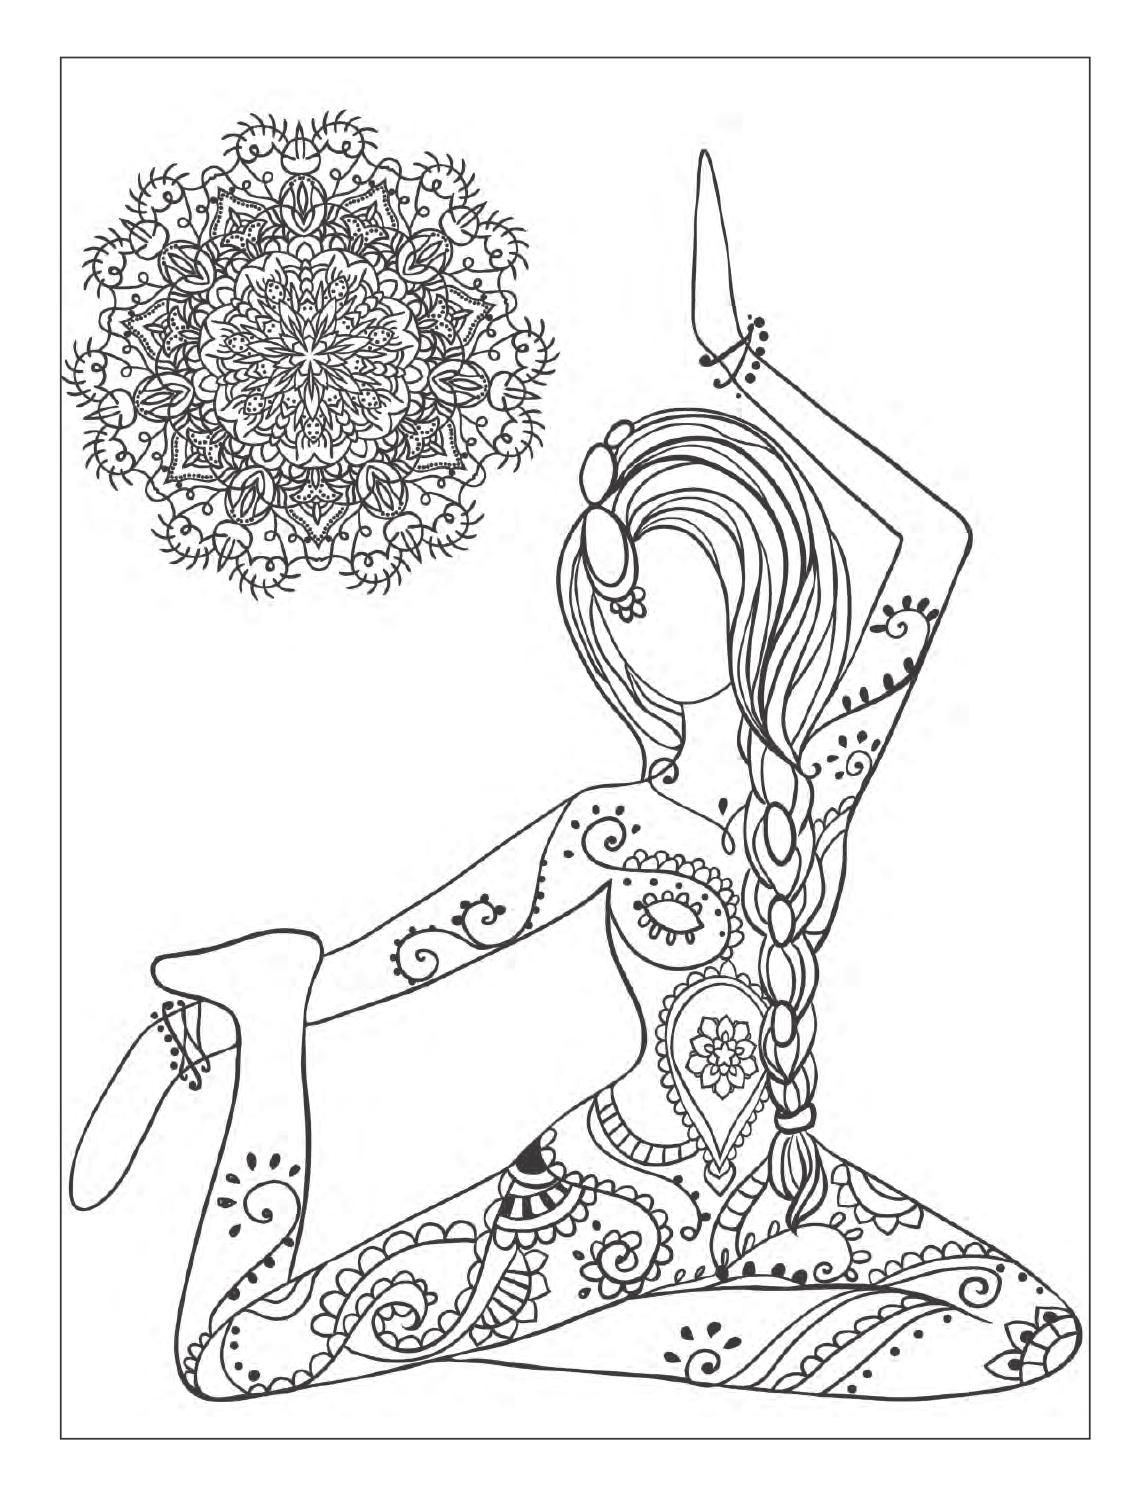 yoga mandala coloring pages image result for yoga colouring pages mandala coloring pages mandala yoga coloring